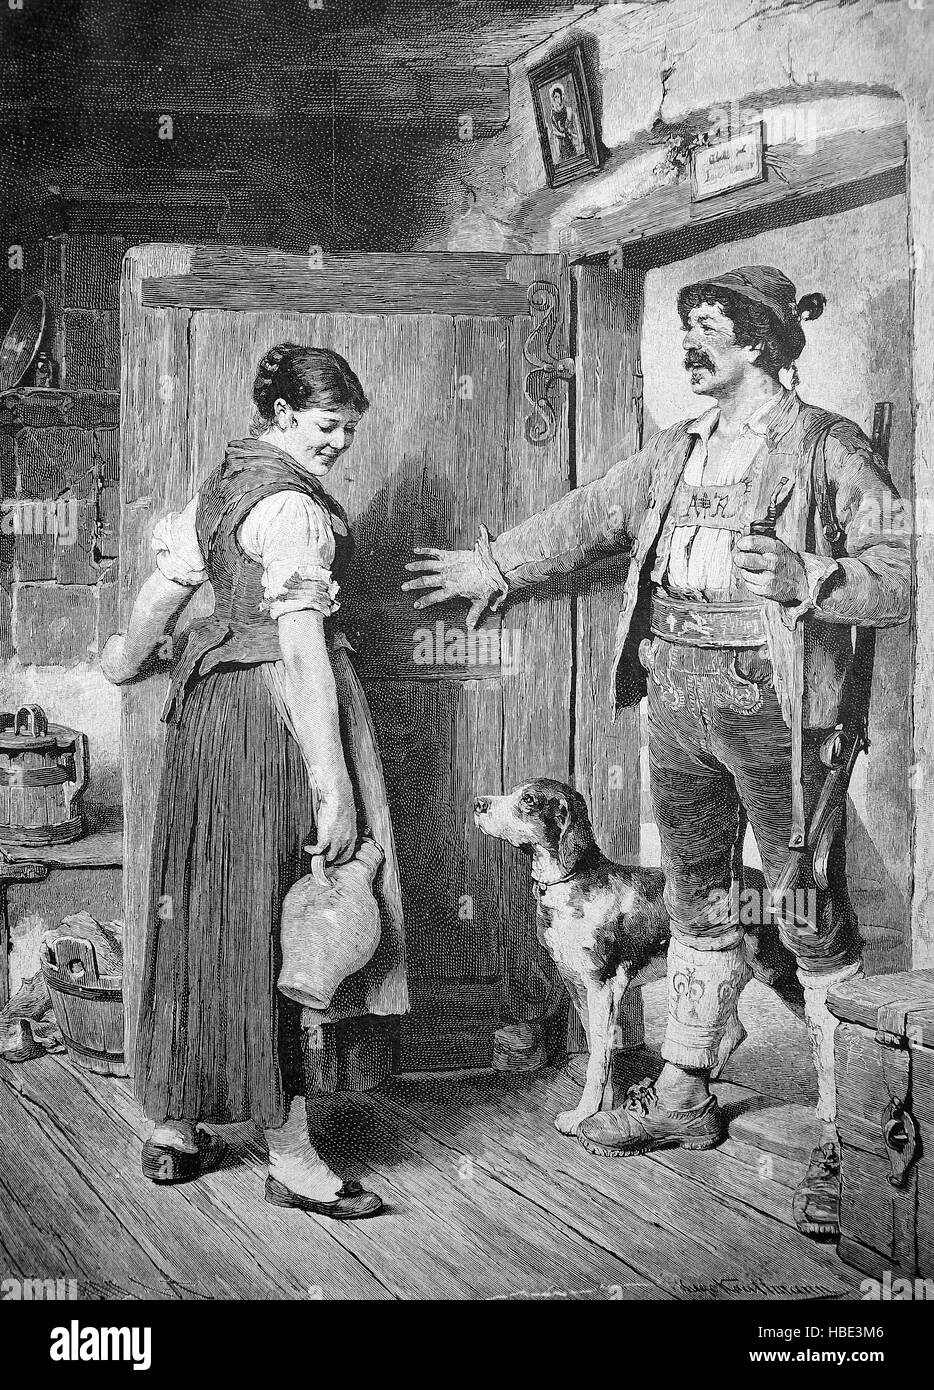 The huntsman comes home with a dog and a rifle, and meets the maid with a wine jar, illustration, woodcut from 1880 - Stock Image